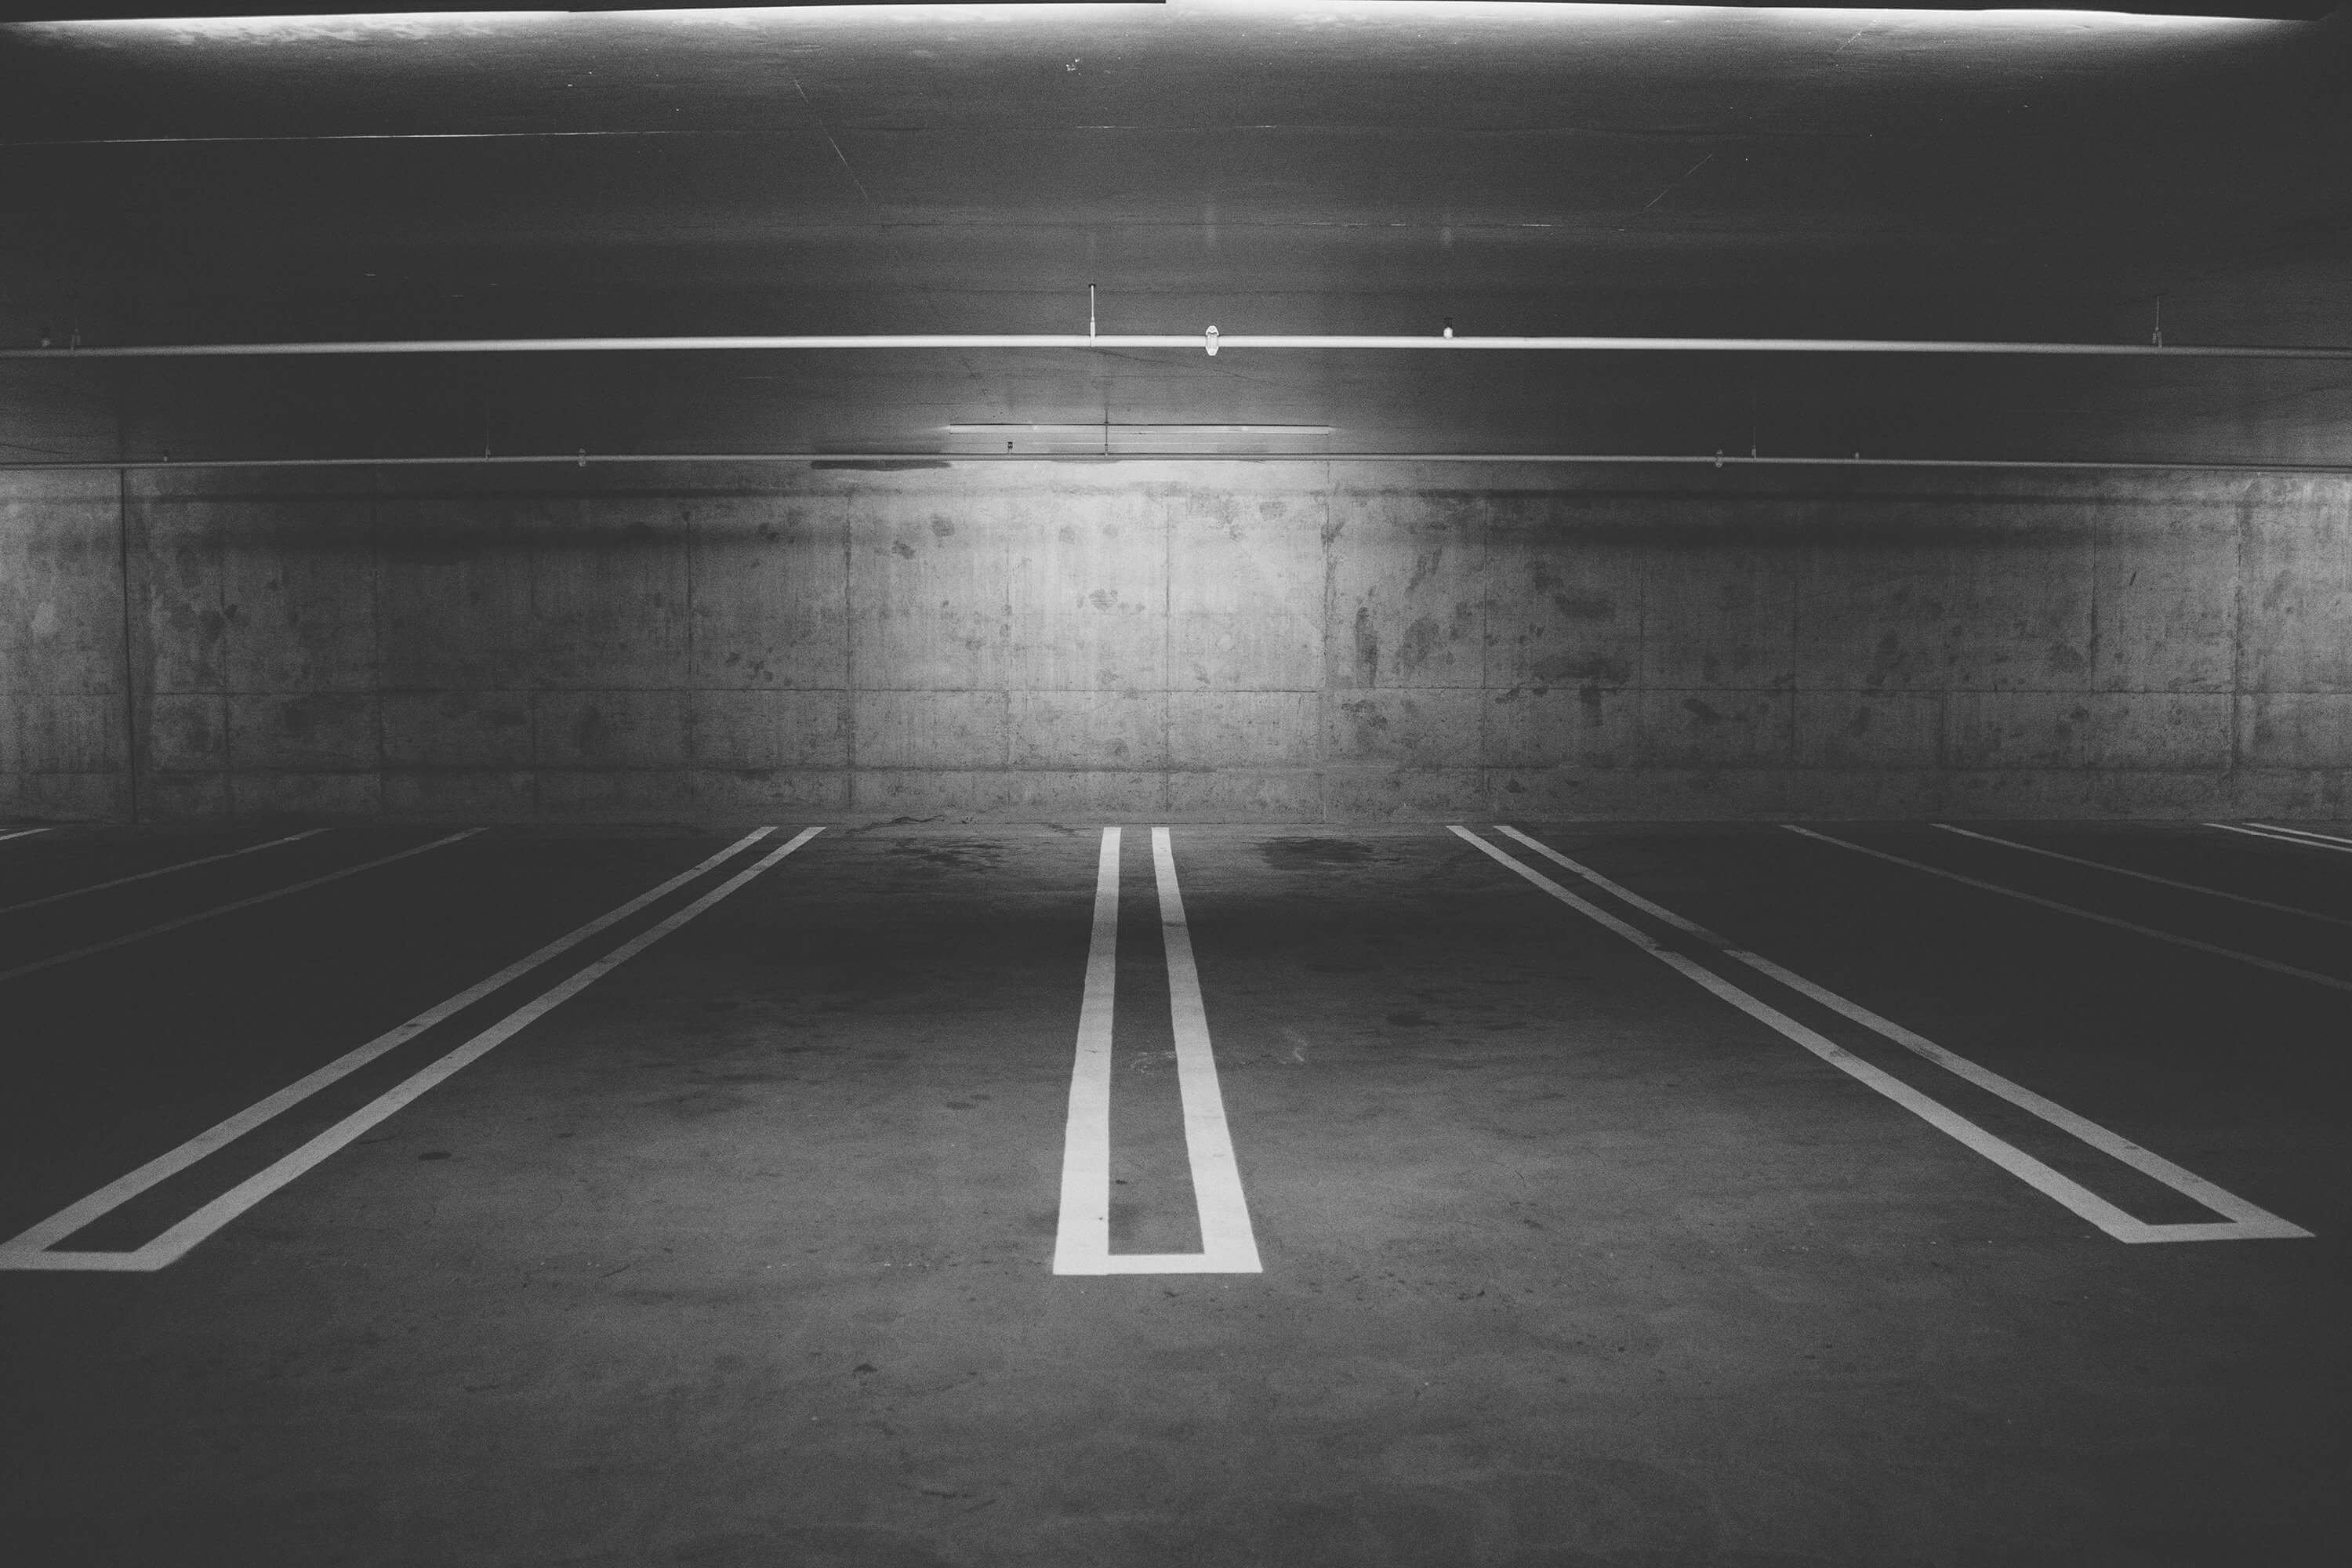 parking-spaces-white-lines-dividing-wall-at-back